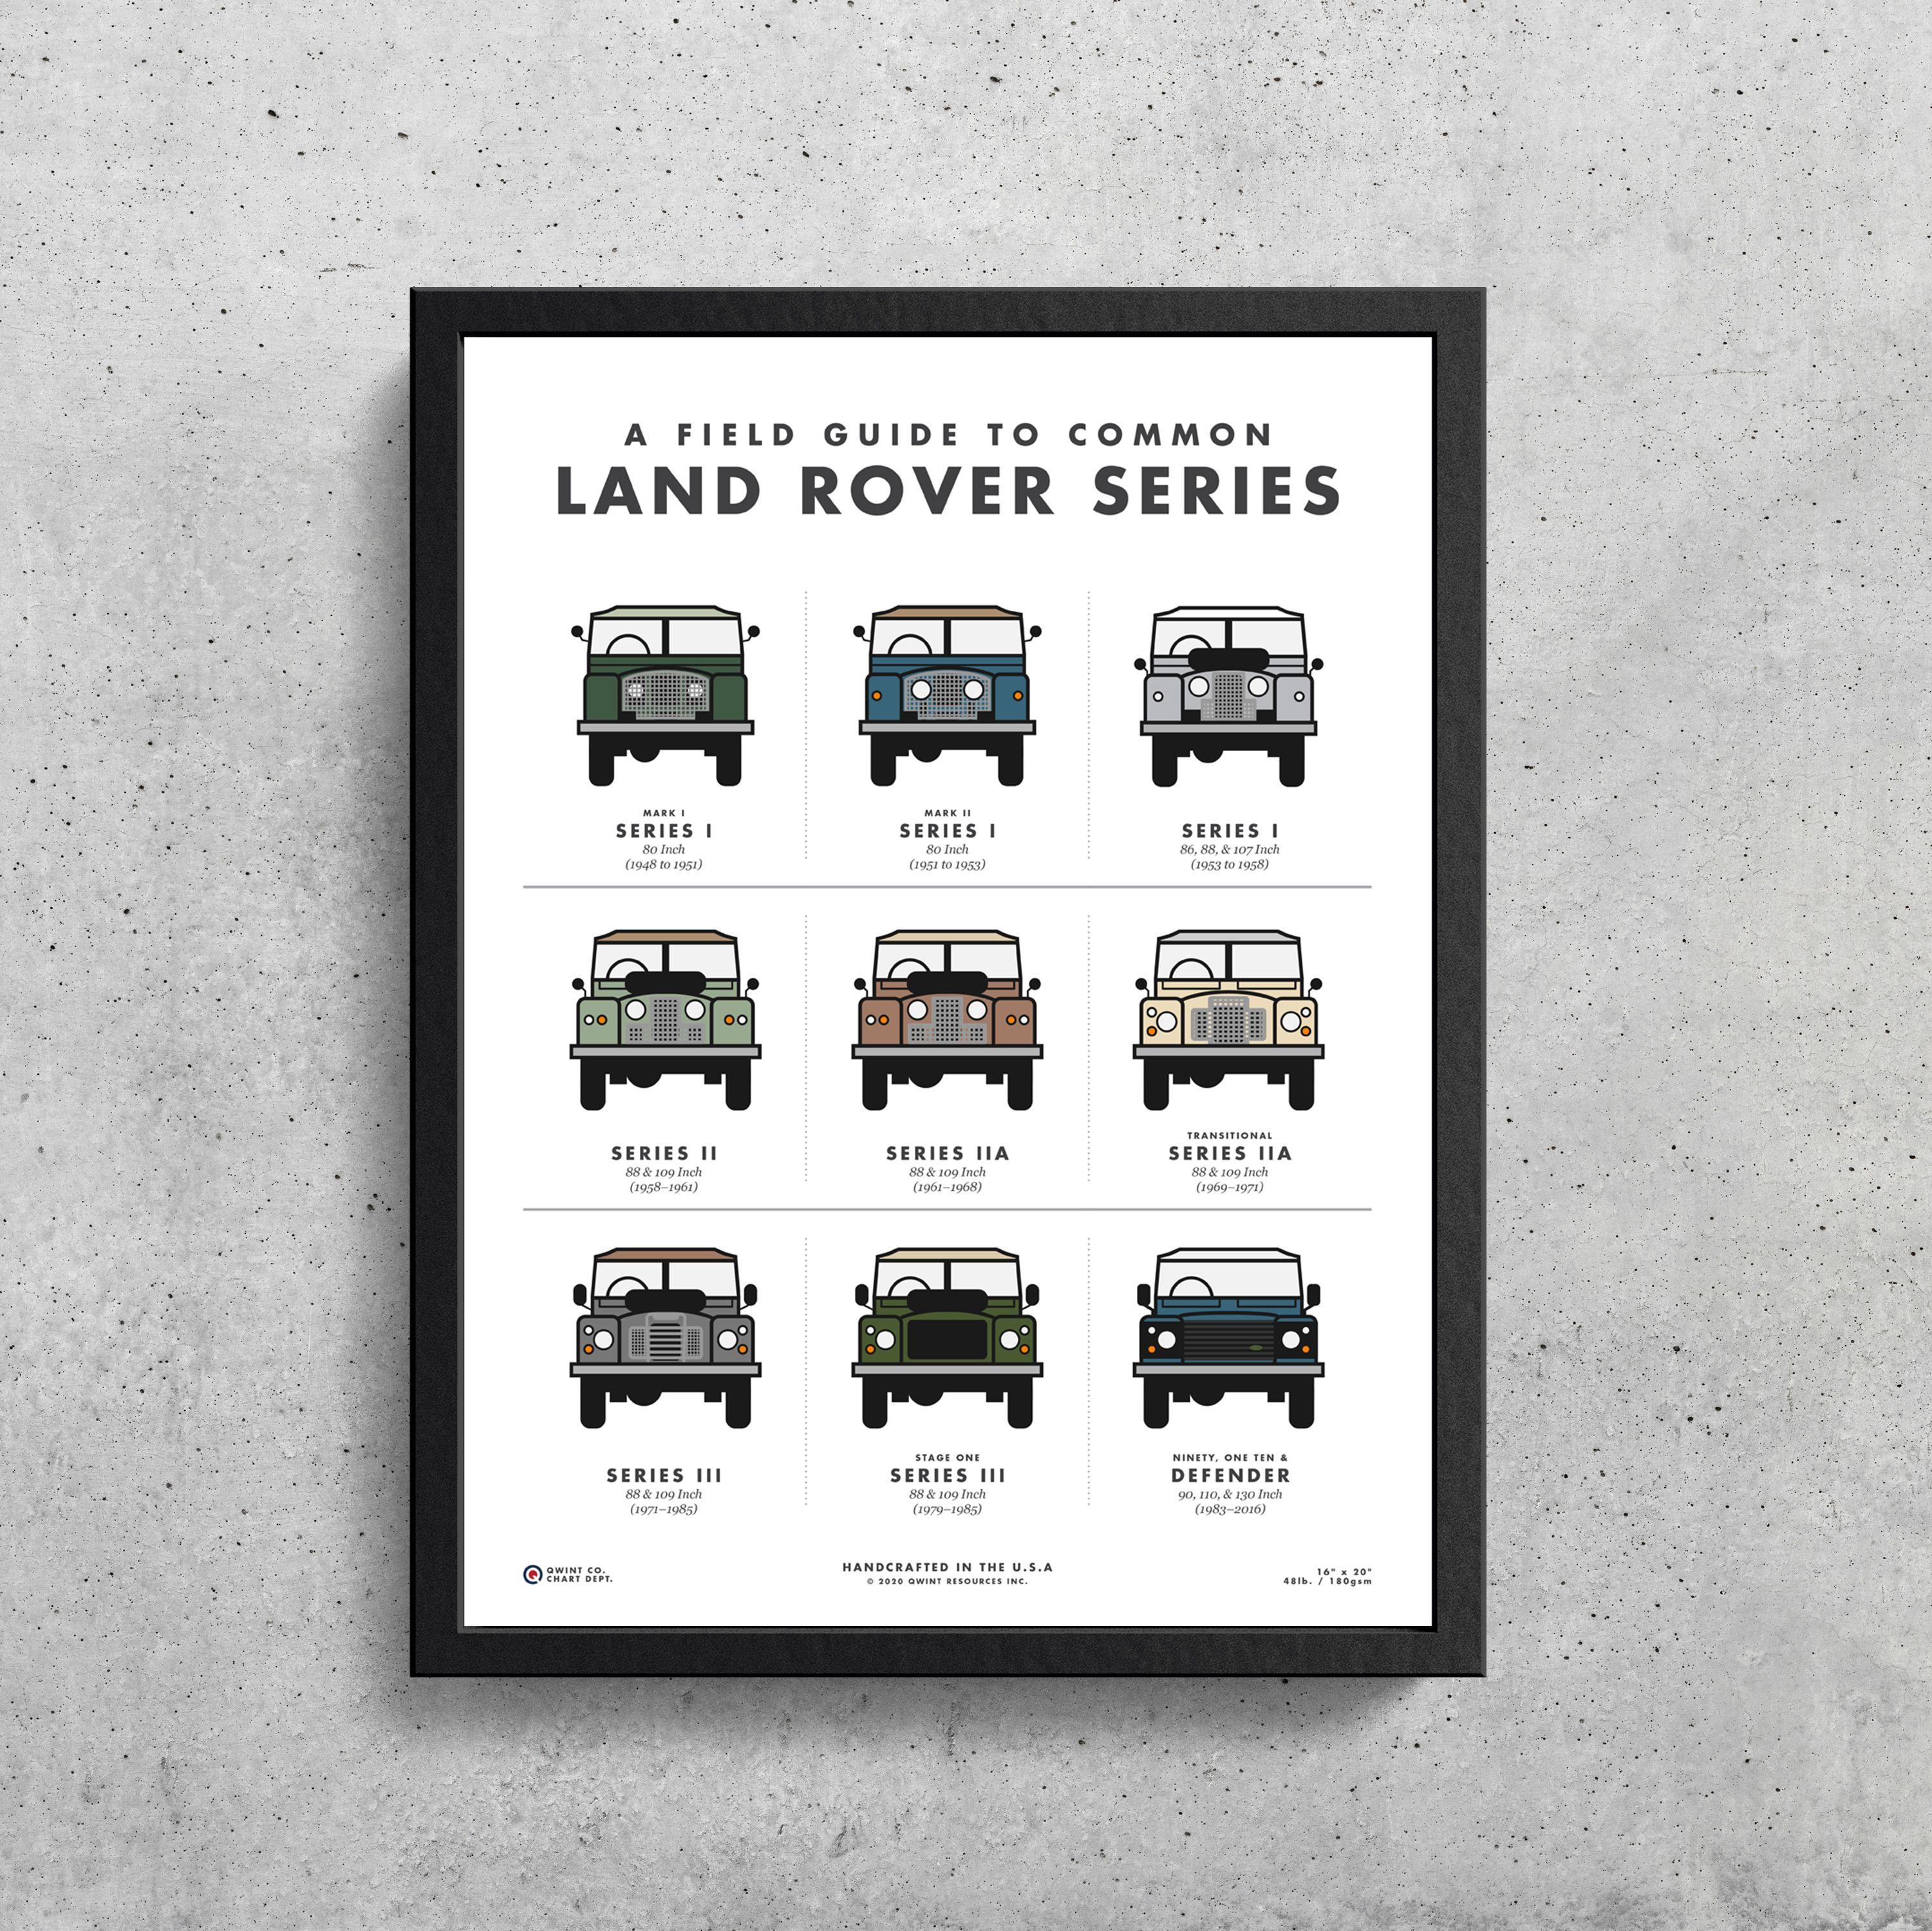 Land Rover Series Printable Land Rover Land Rover Defender Etsy Land Rover Series Land Rover Field Guide